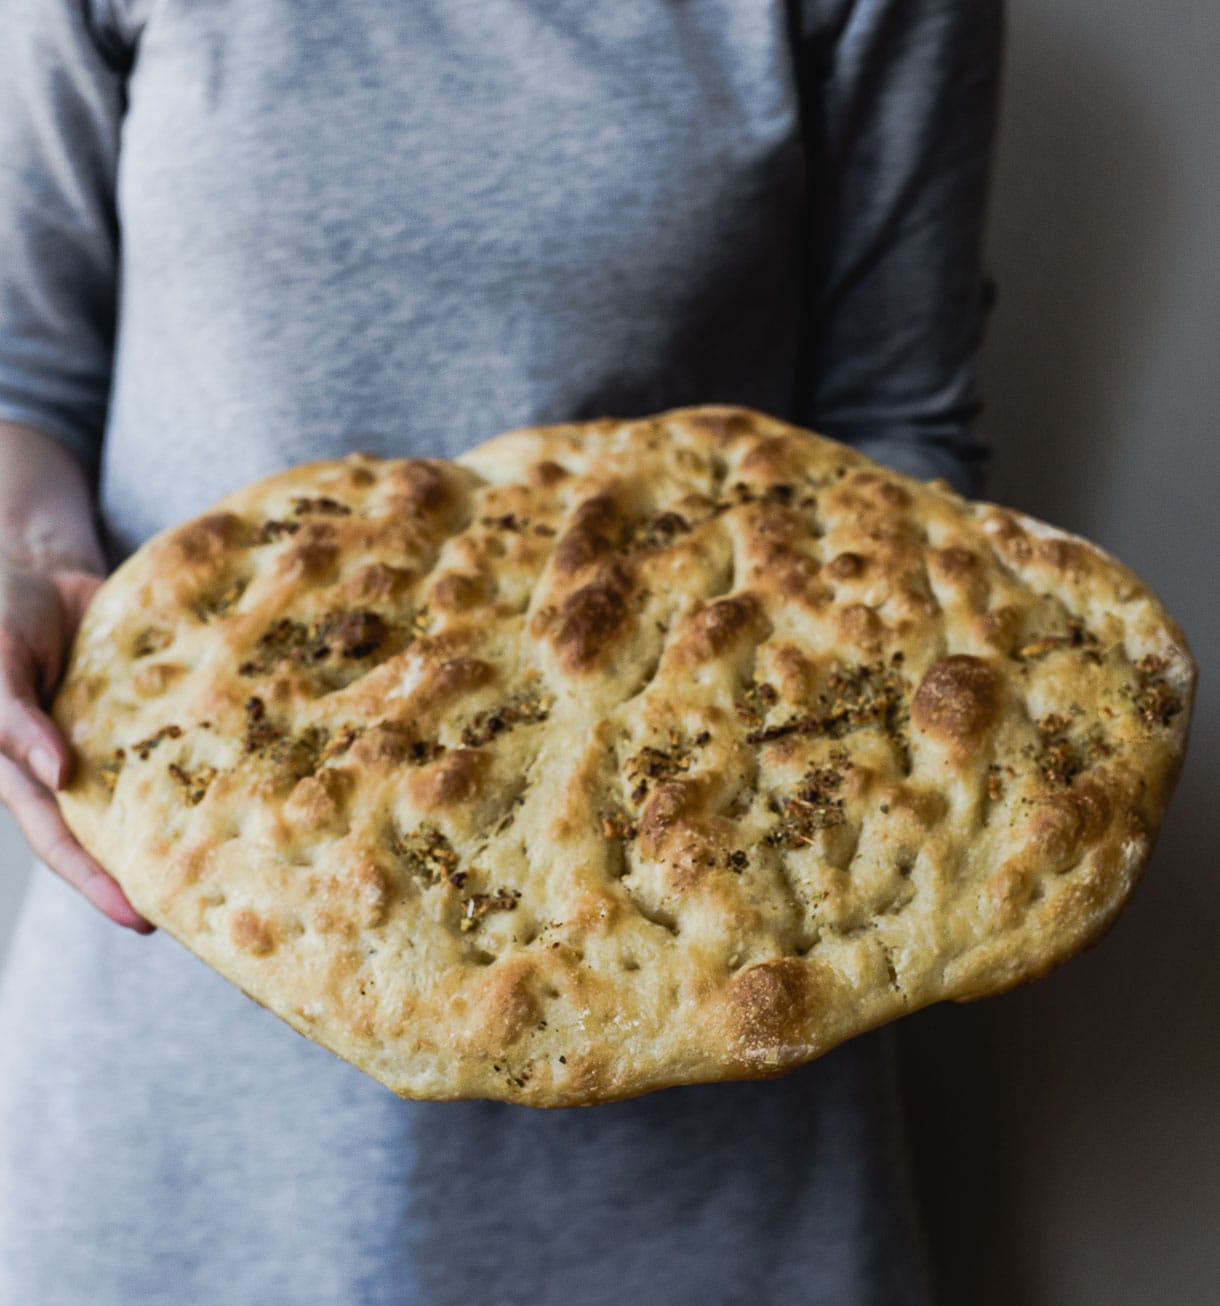 Sourdough Foccacia - This herby, fluffy, soft loaf is addicting to say the least. You can use it for breakfast sandwiches, as a side, or as a pizza base.